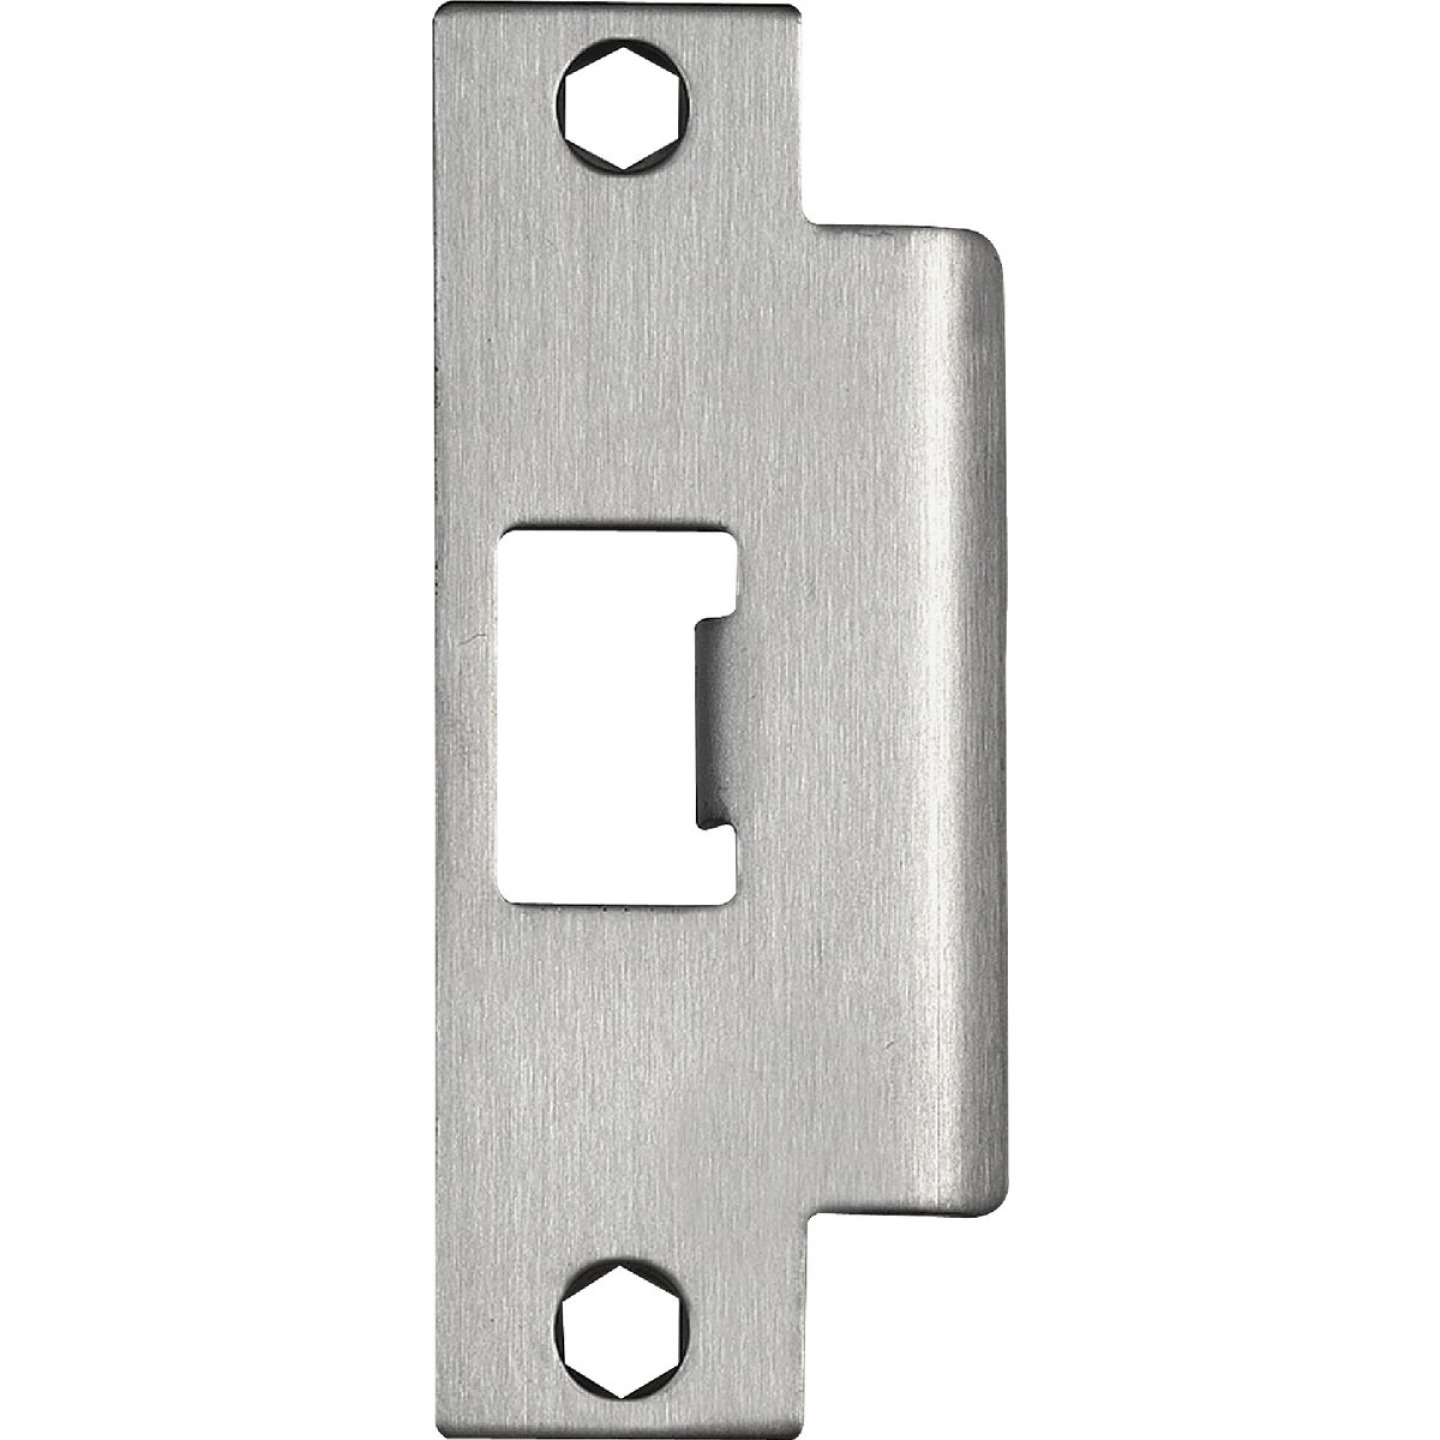 Tell Satin Stainless Steel 1-1/4 In. ASA Strike Plate Image 1